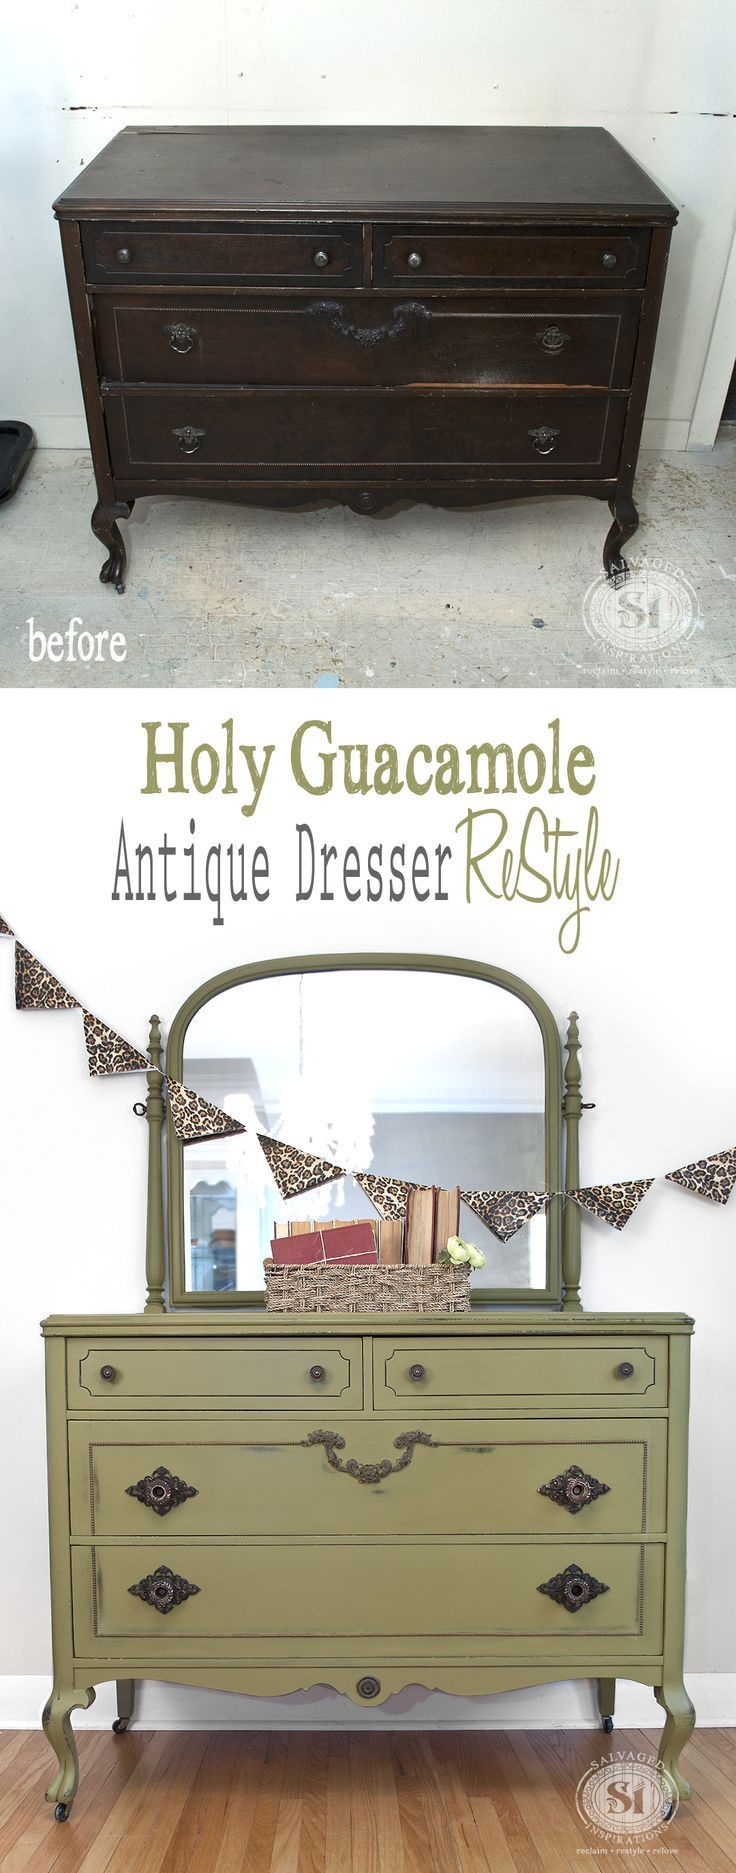 Vintage Dresser gets a makeover with #DixieBelle Paints #HolyGuacamole | Salvaged Inspirations